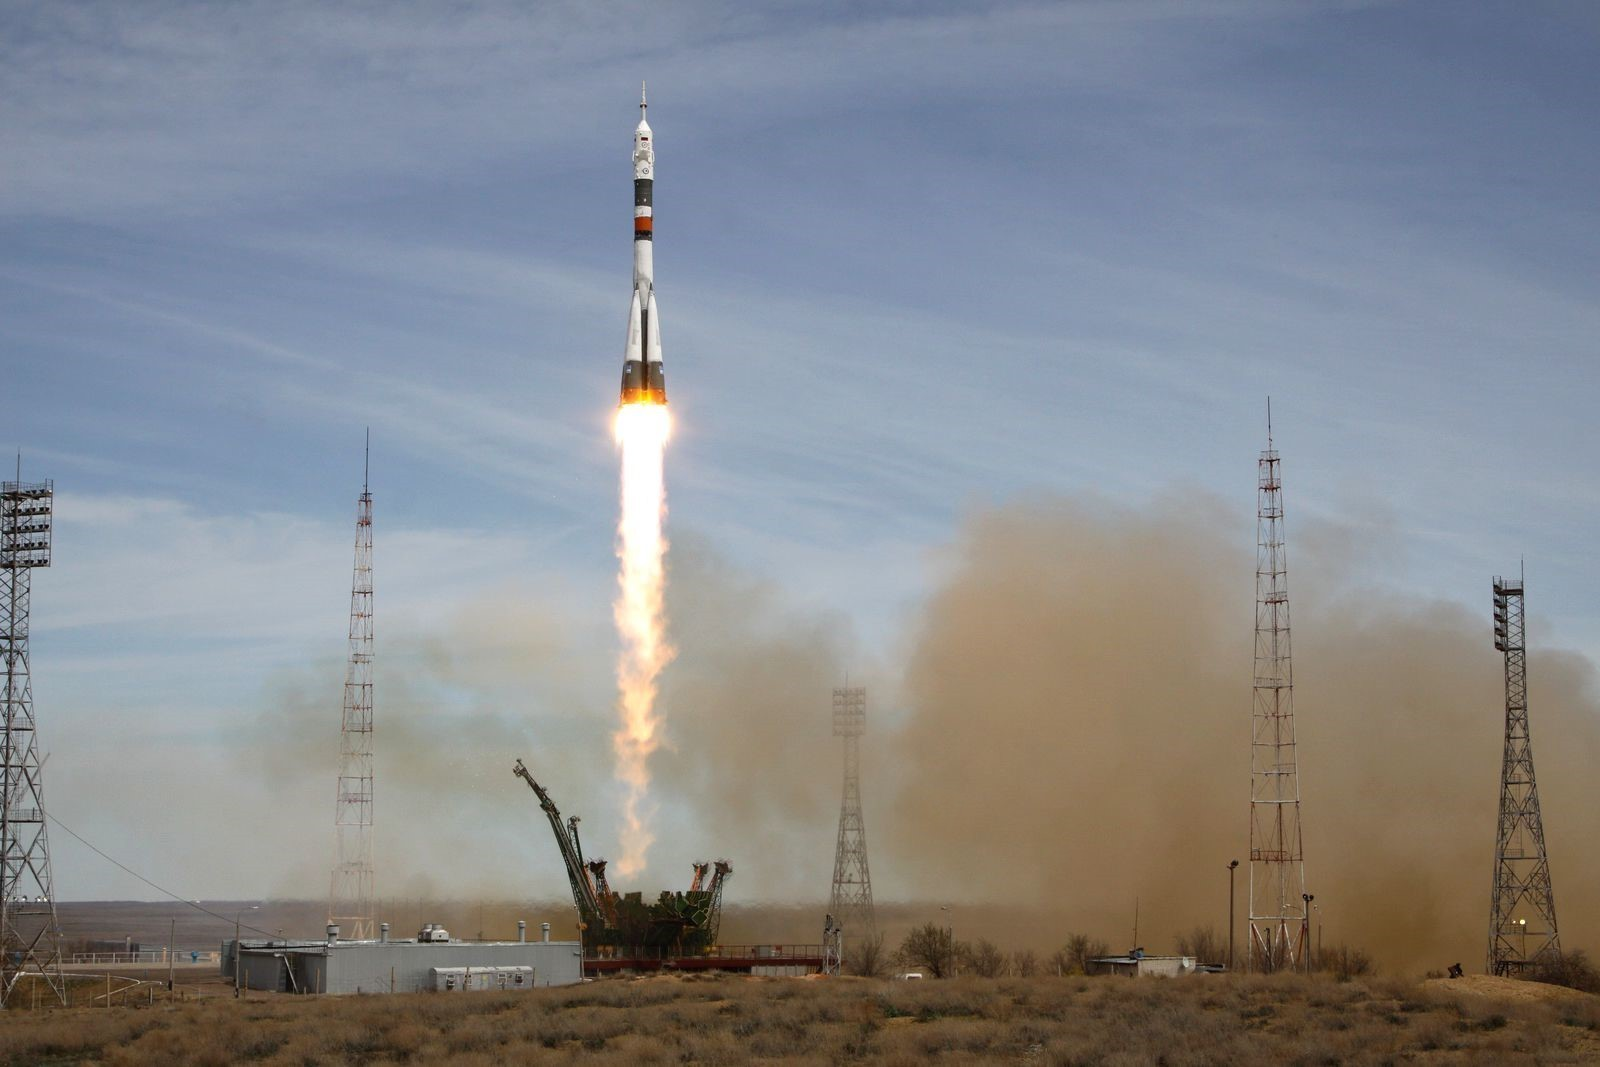 Soyuz MS-04 launch